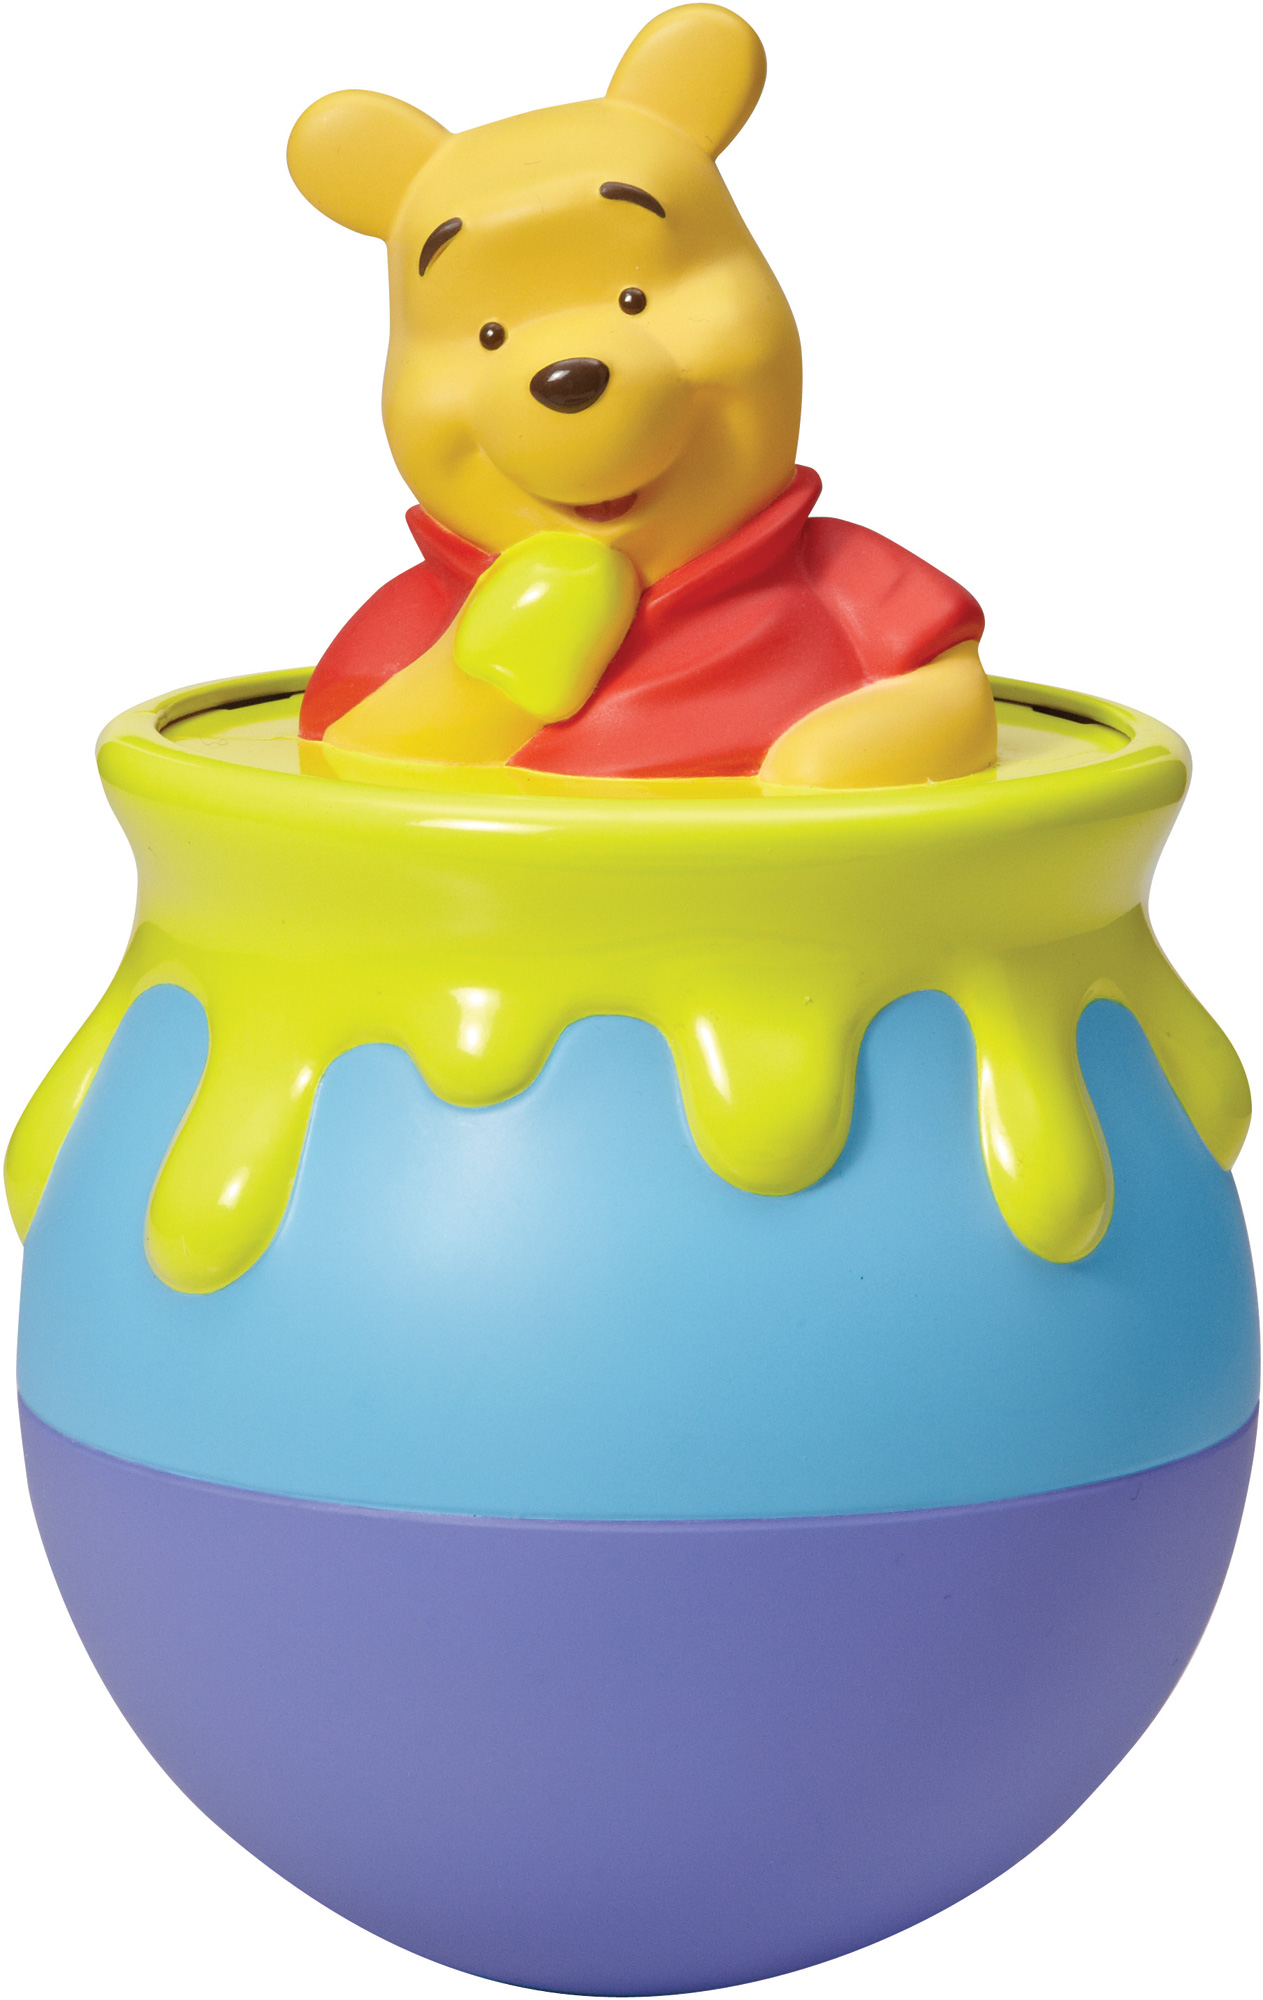 Tomy Winnie The Pooh Roly Poly Pooh Chime Toy Sounds Gift